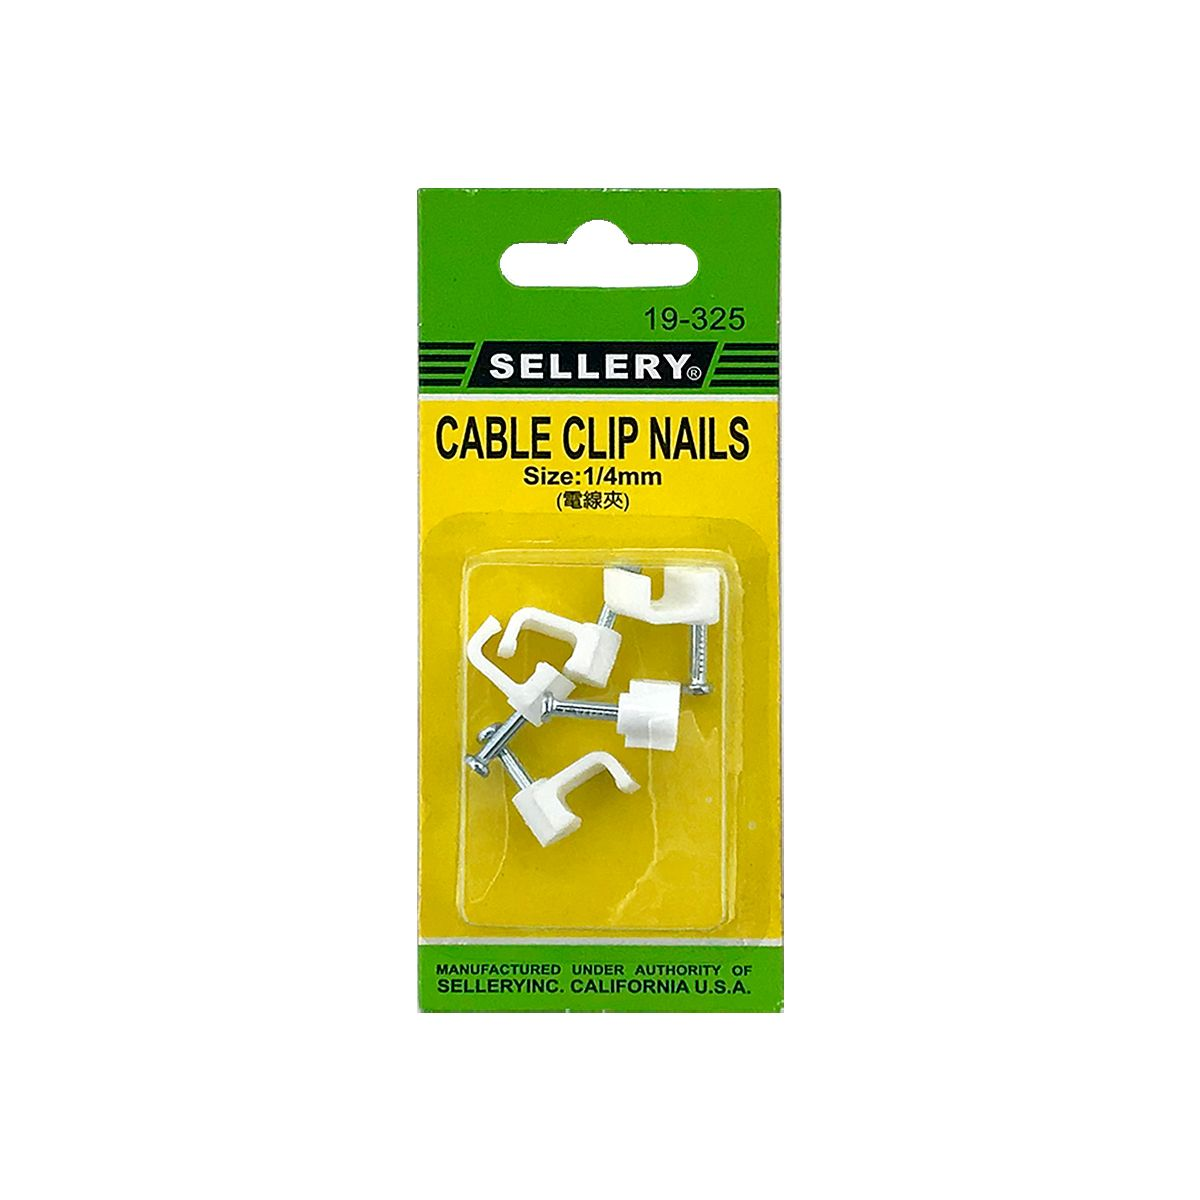 SELLERY 19-325 Cable Clip Nails- 1/4""